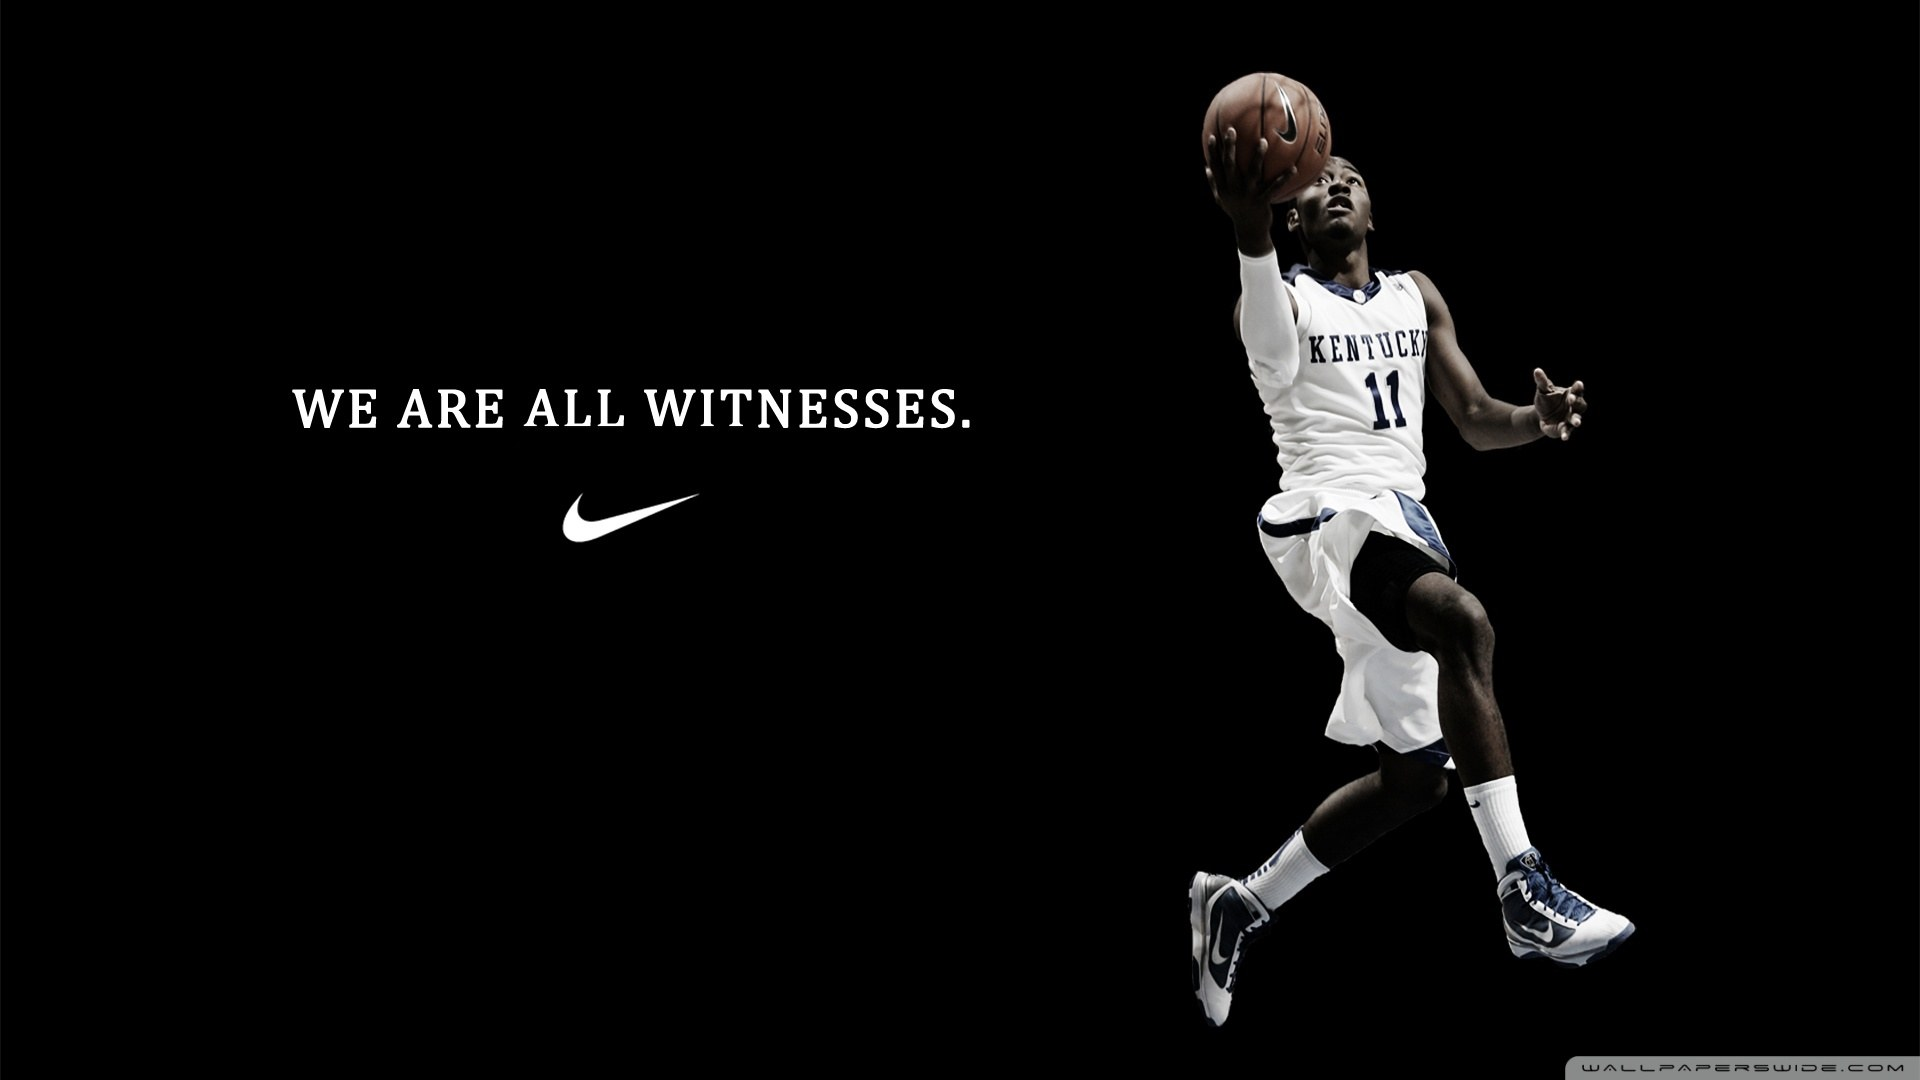 We Are All Witnesses 1920x1080 HD Wallpaper Sport NBA Basketball 1920x1080